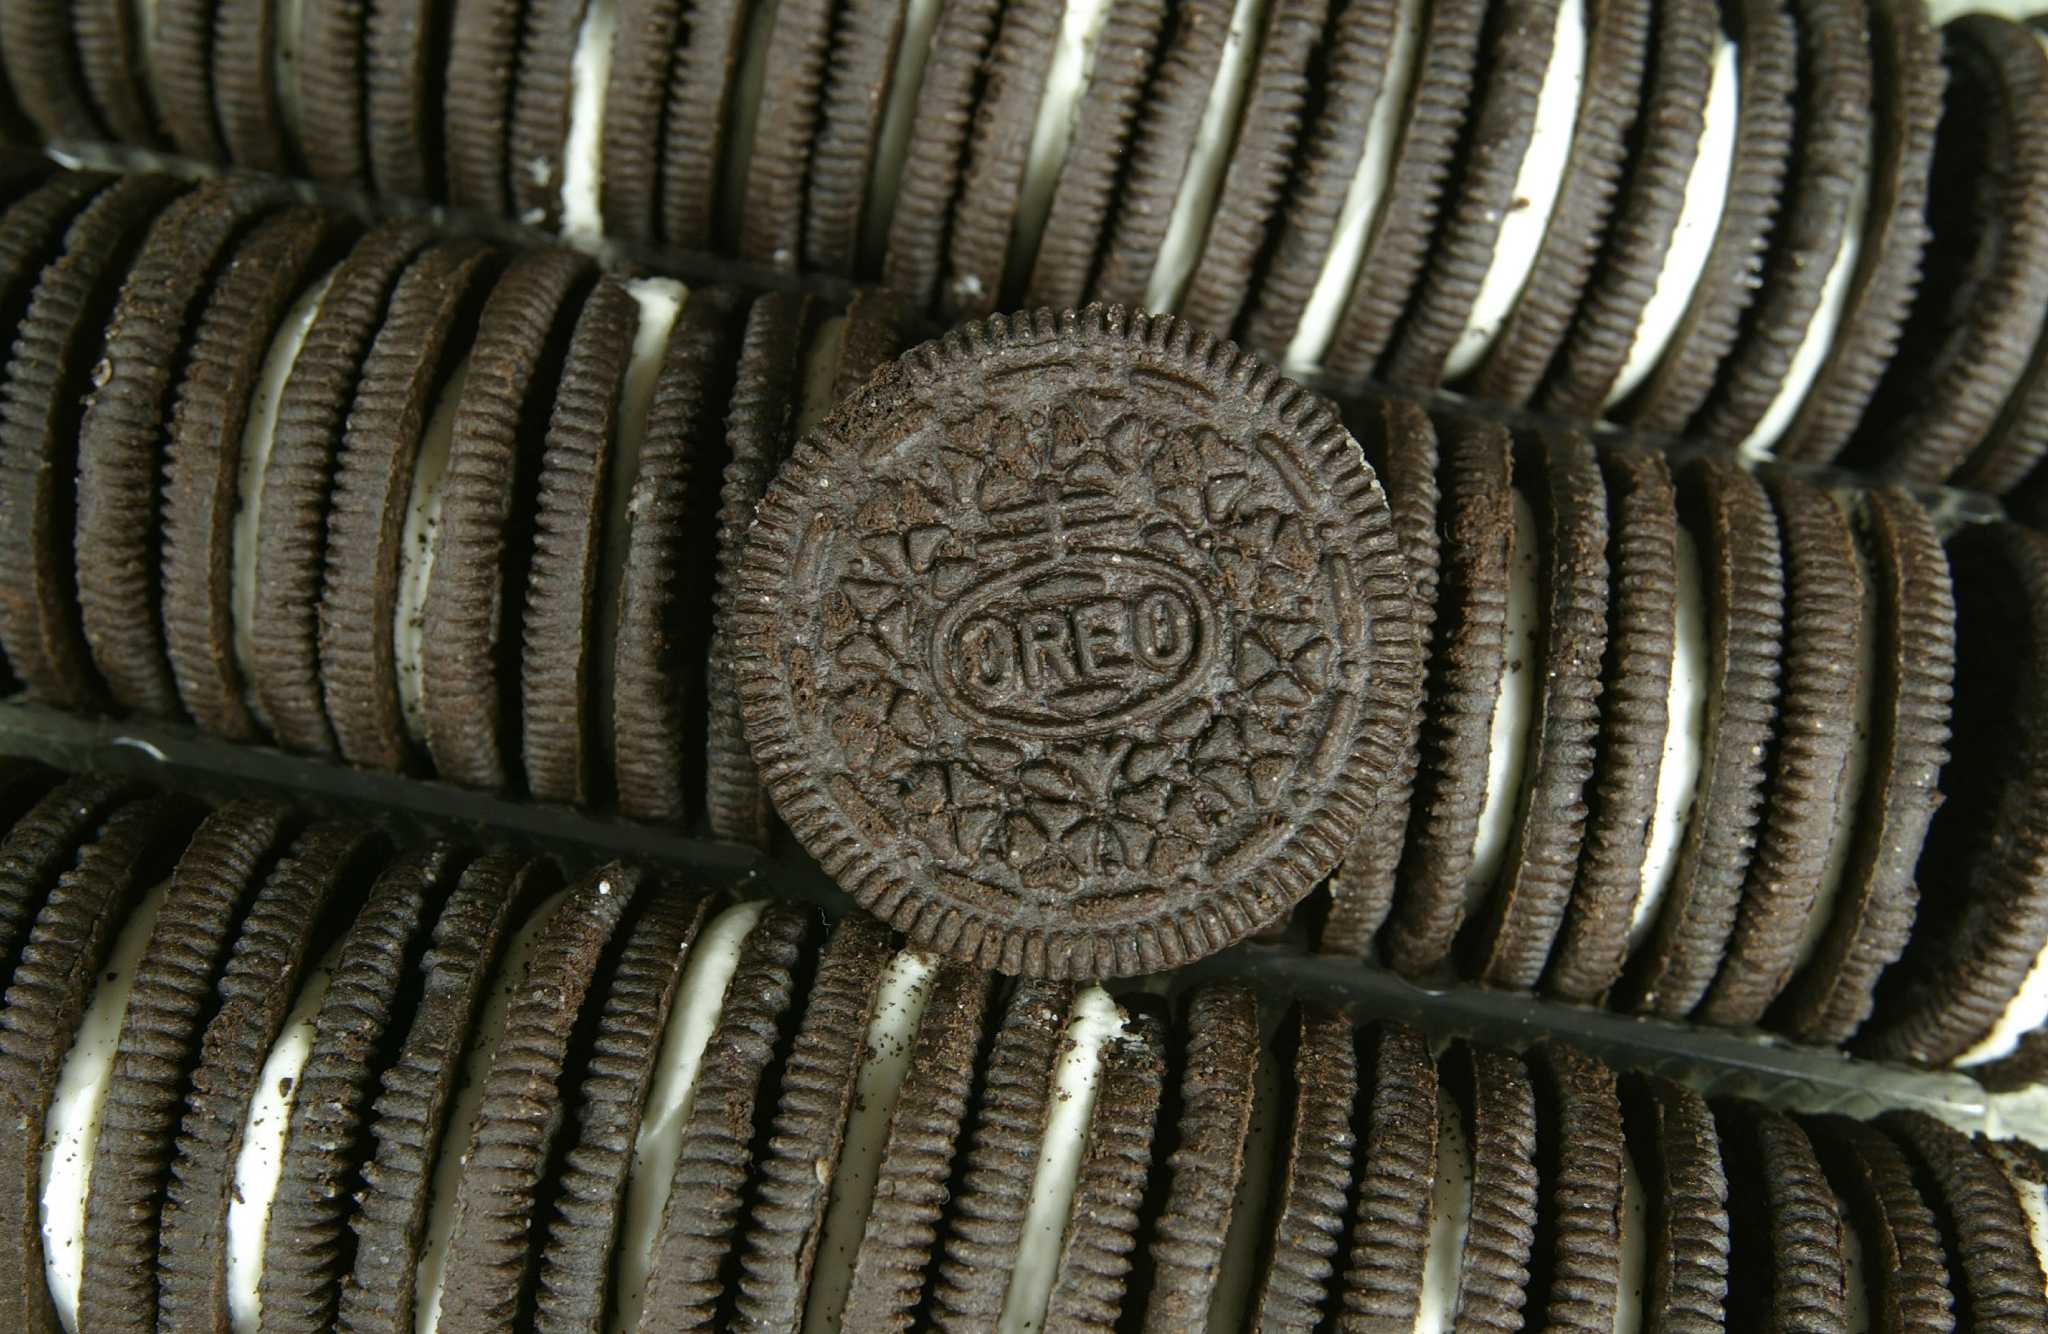 Climate Change Is Coming for Your Oreos - San Antonio Express-News